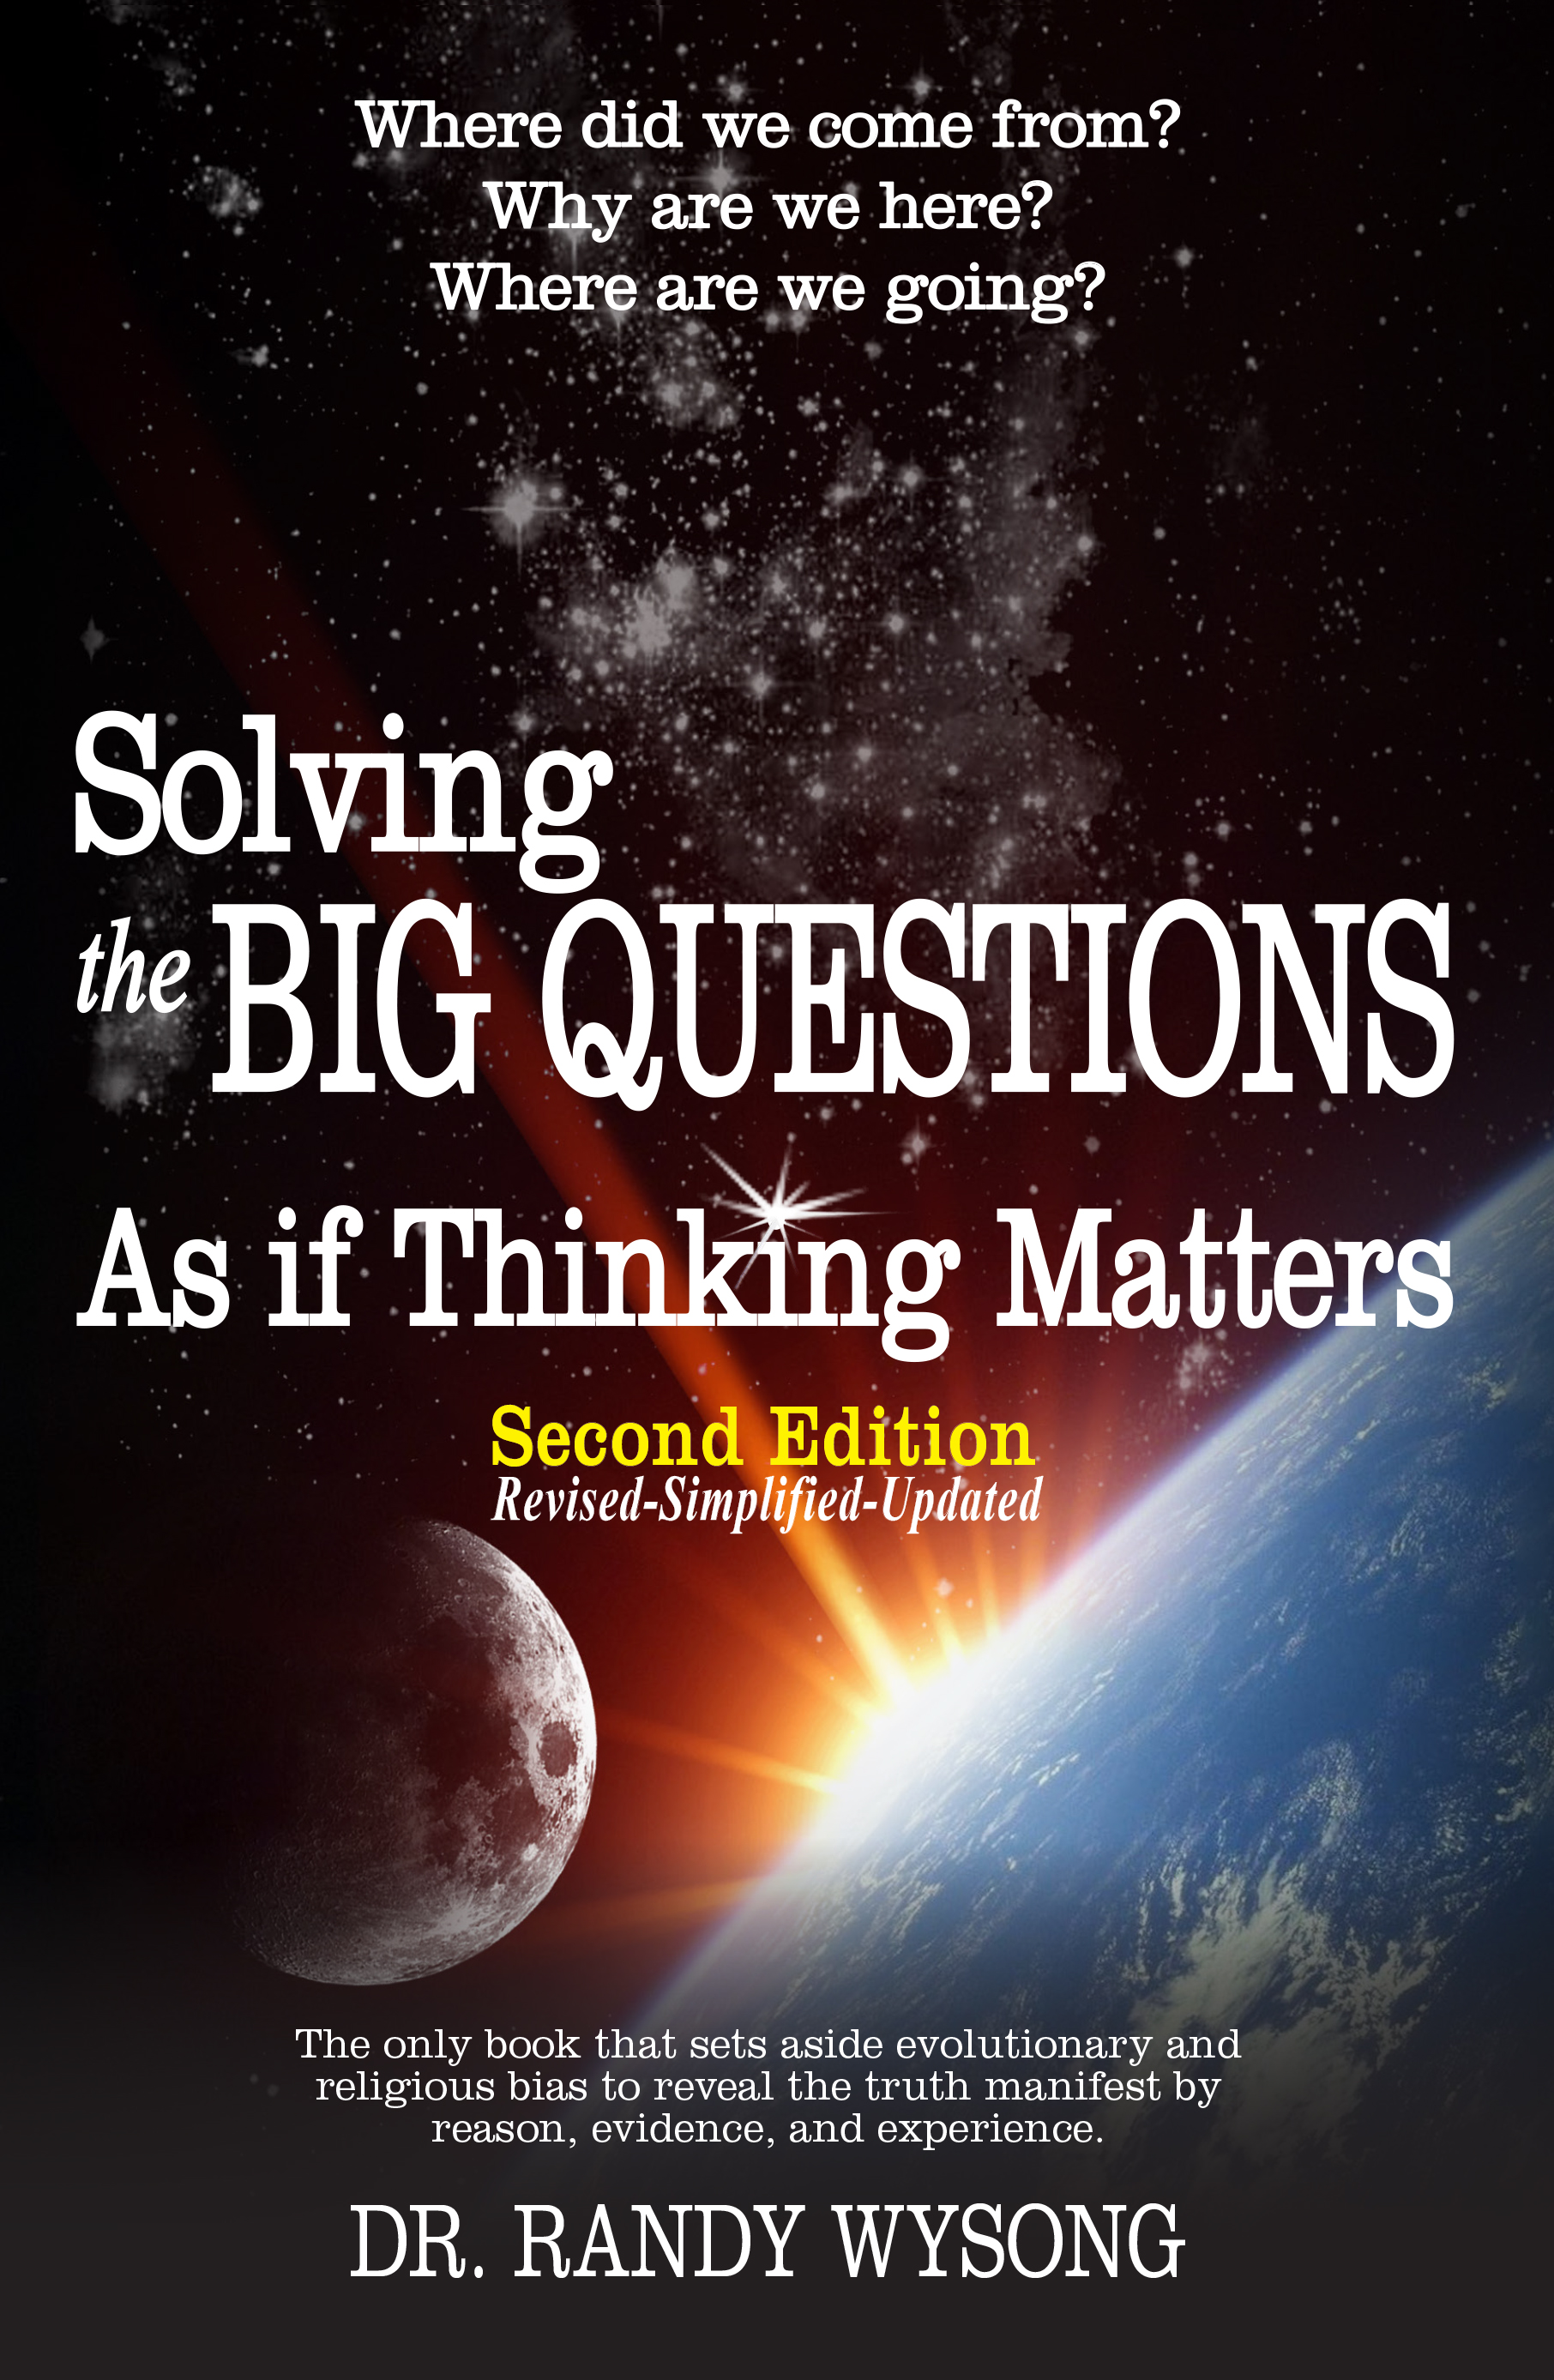 SOLVING THE BIG QUESTIONS AS IF THINKING MATTERS